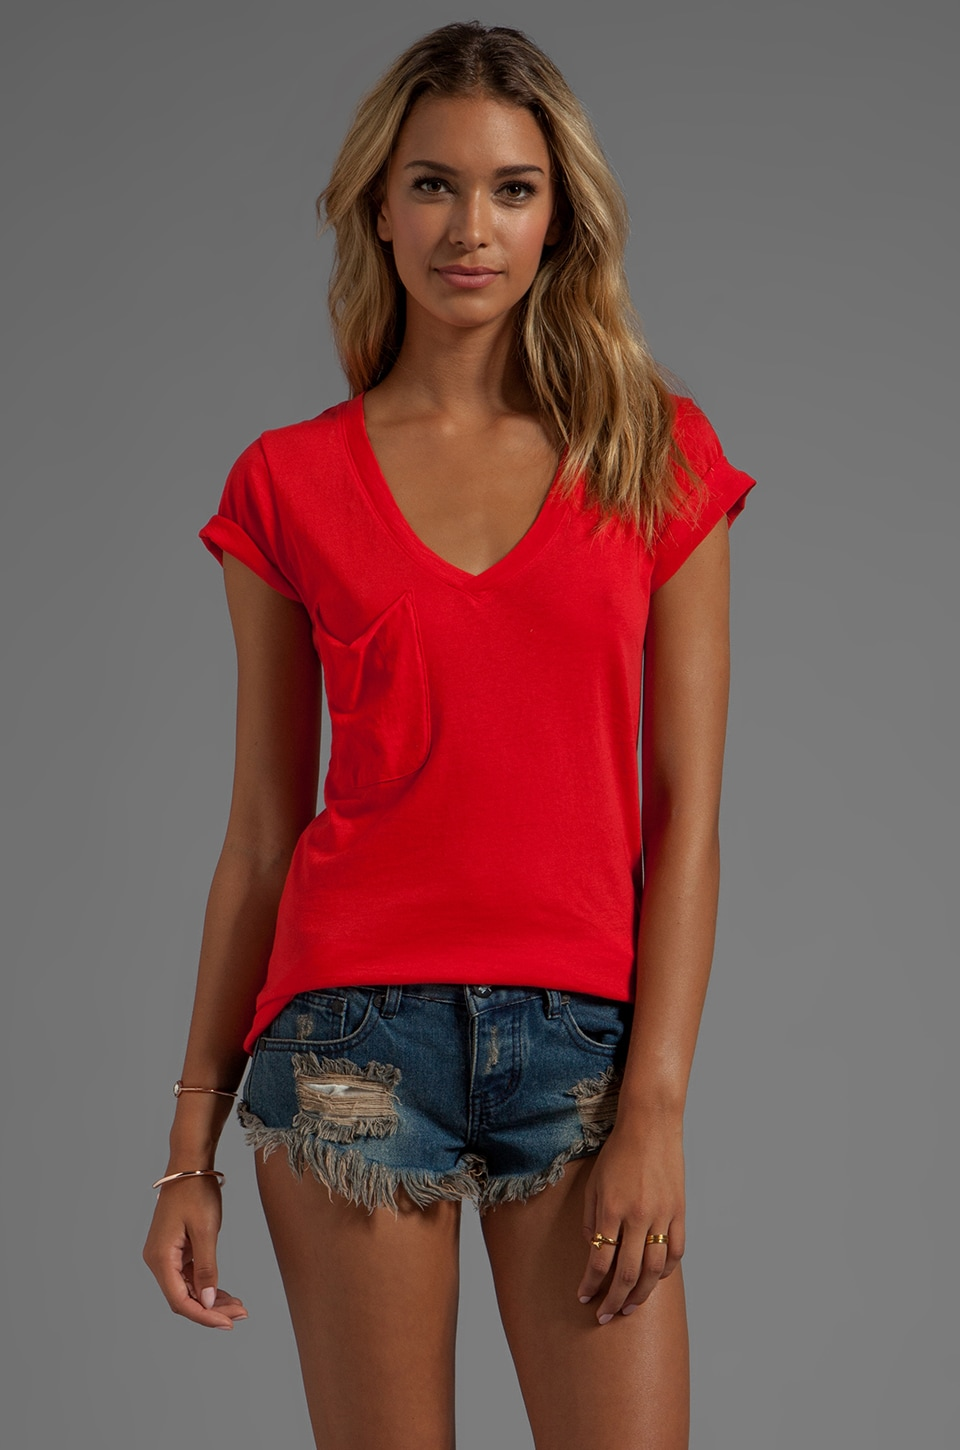 Bobi Light Weight Jersey Short Sleeve Pocket Tee in First Lady